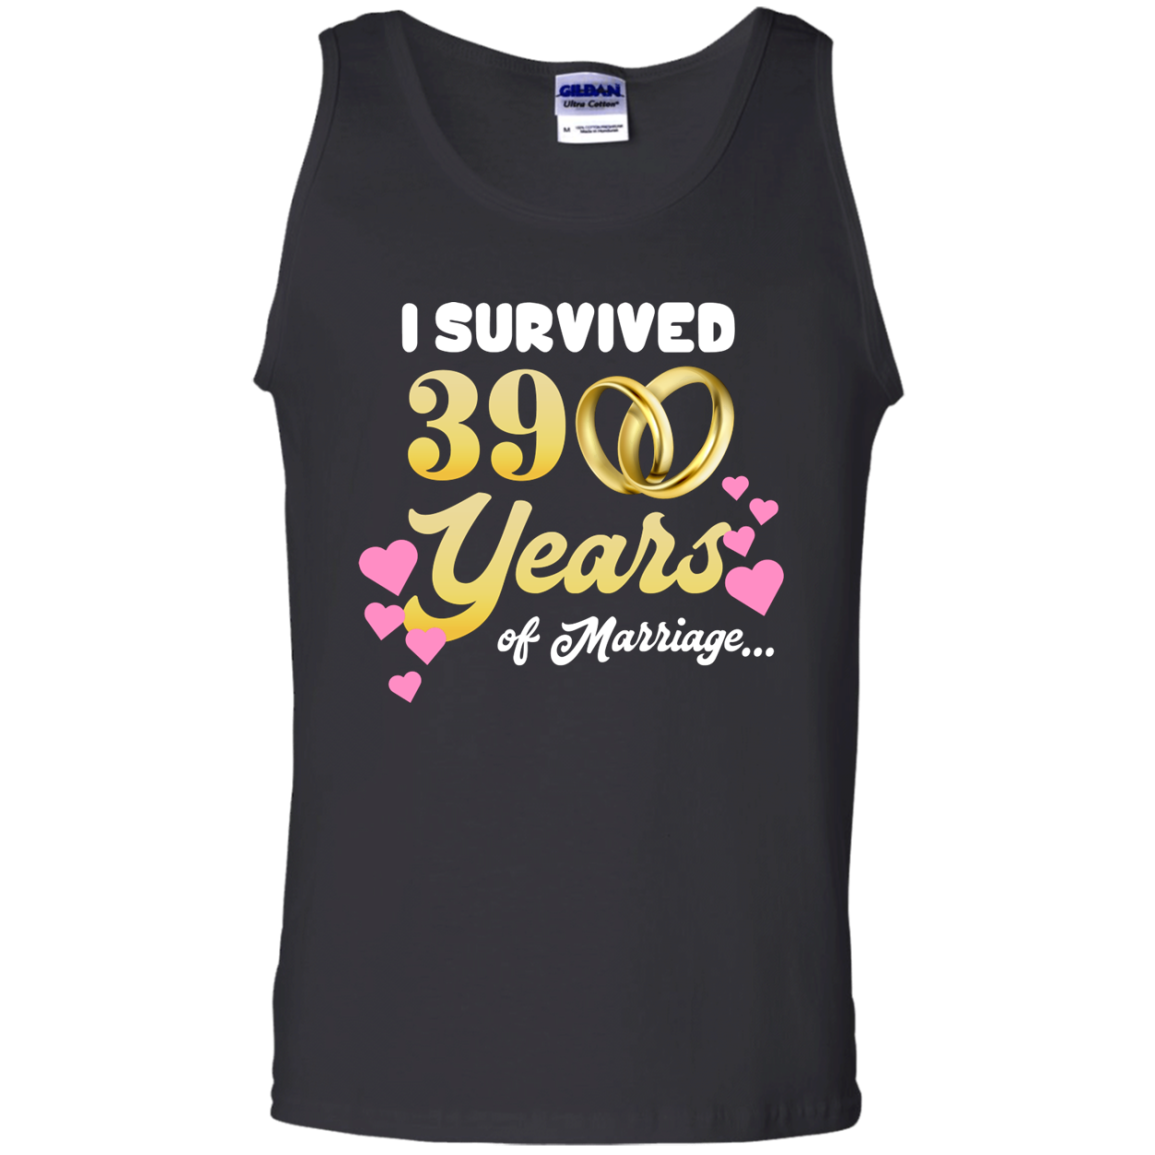 High Quality Cute I Survived 39 Years Of Marriage Cool Wedding Anniversary Shirt Ta